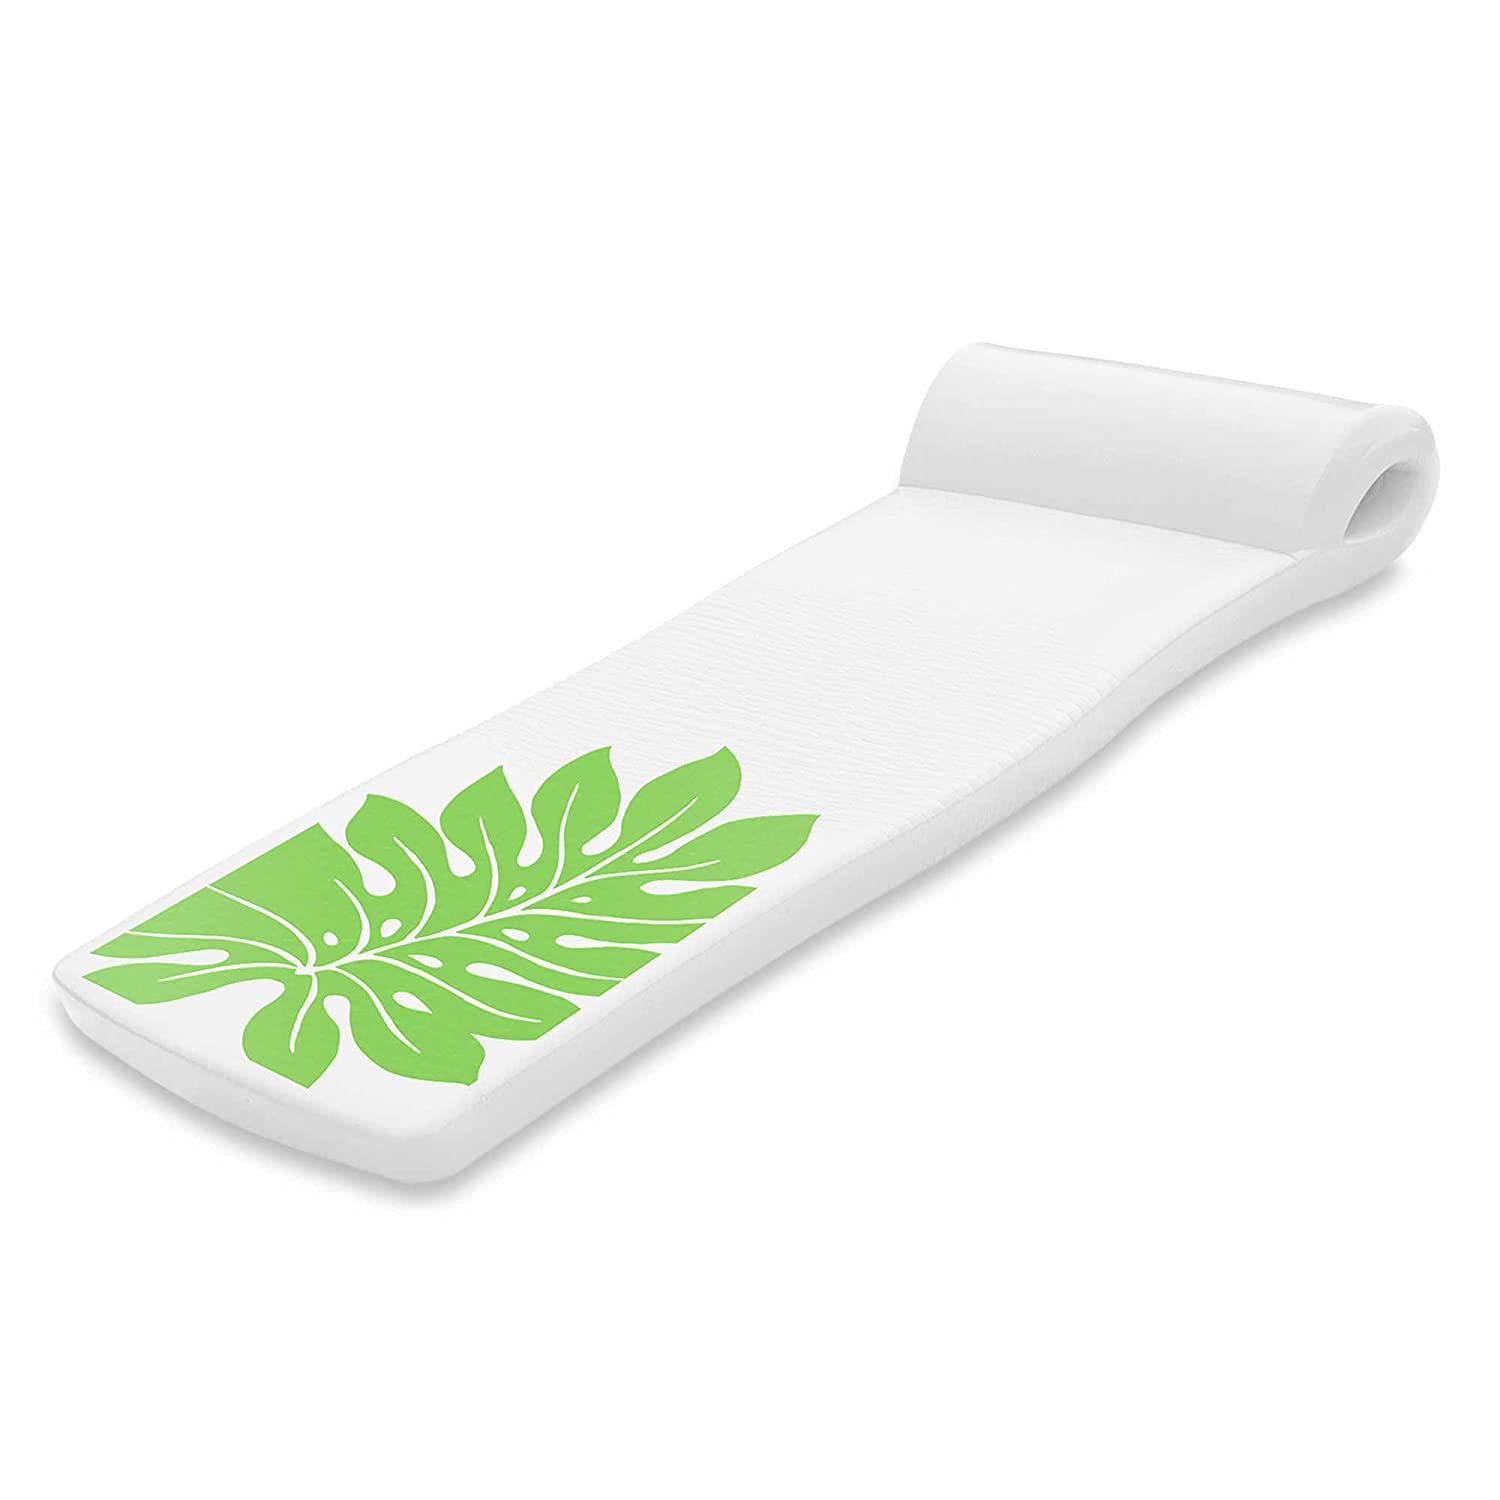 Super Soft Ultra Sunsation Pool Float in White with Green Leaf by Super Soft